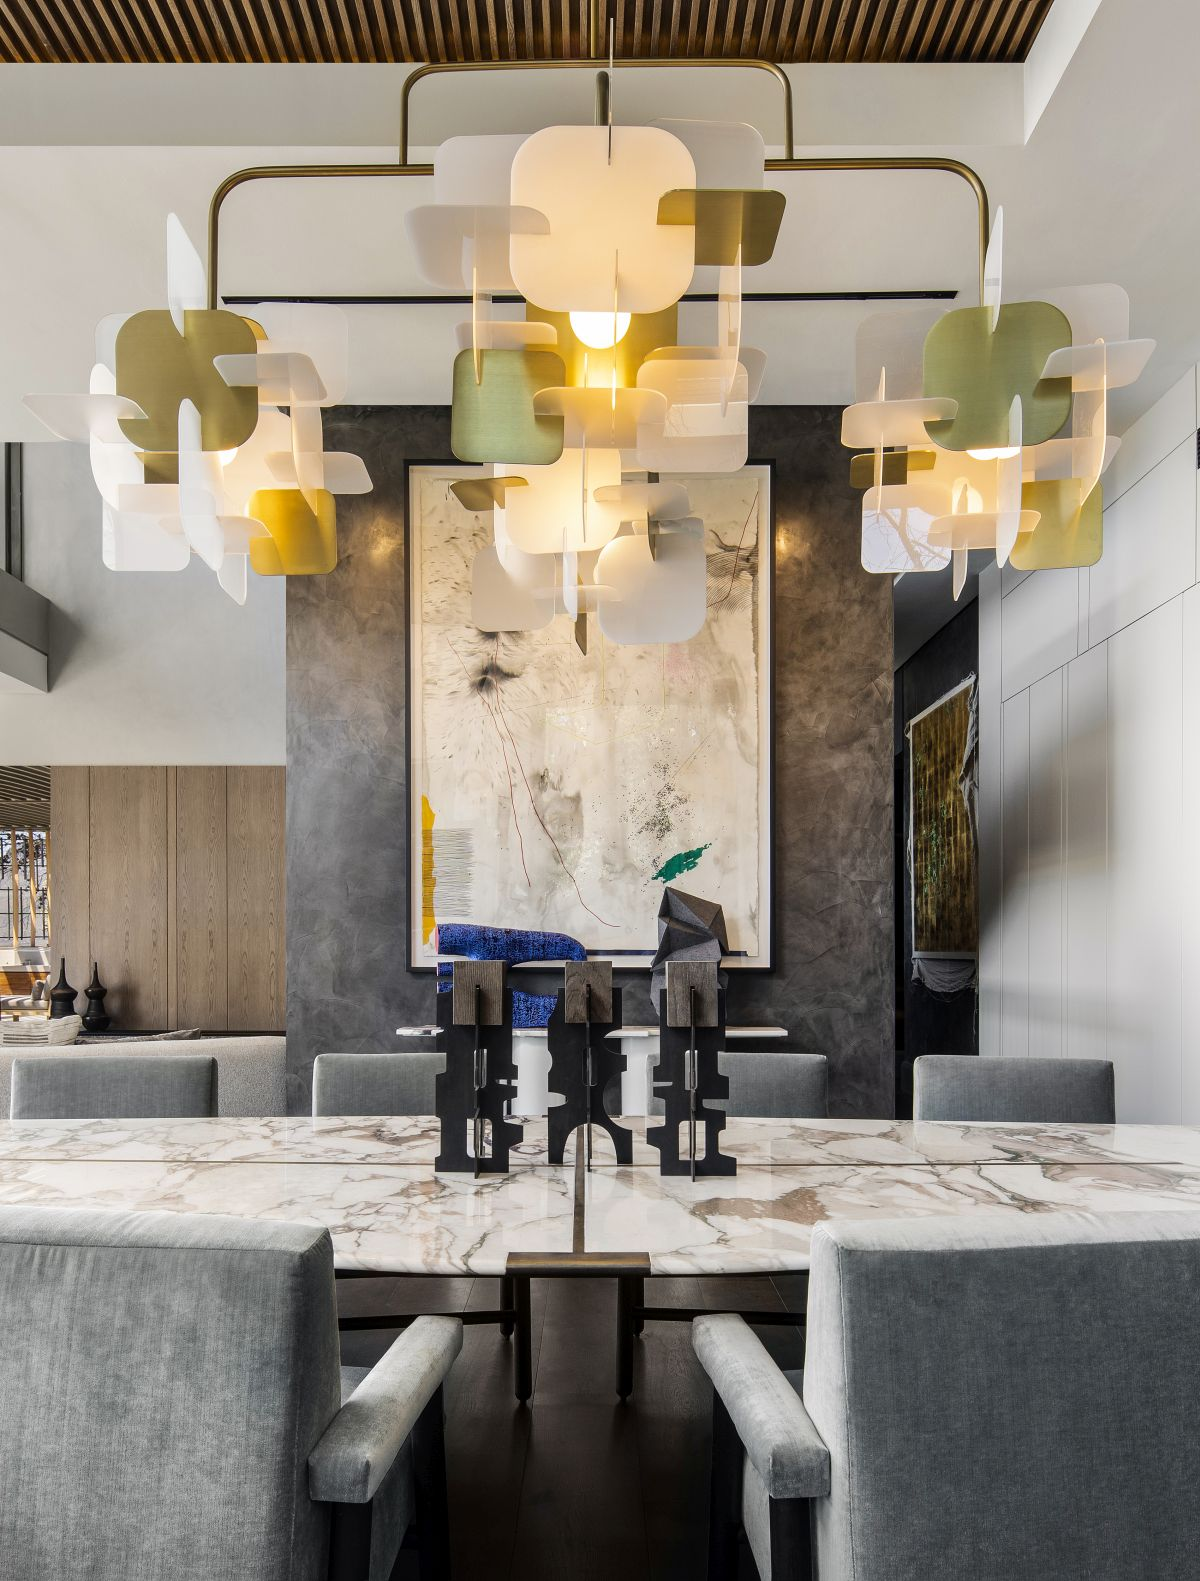 The dining table is one of several custom furniture pieces featured throughout the penthouse